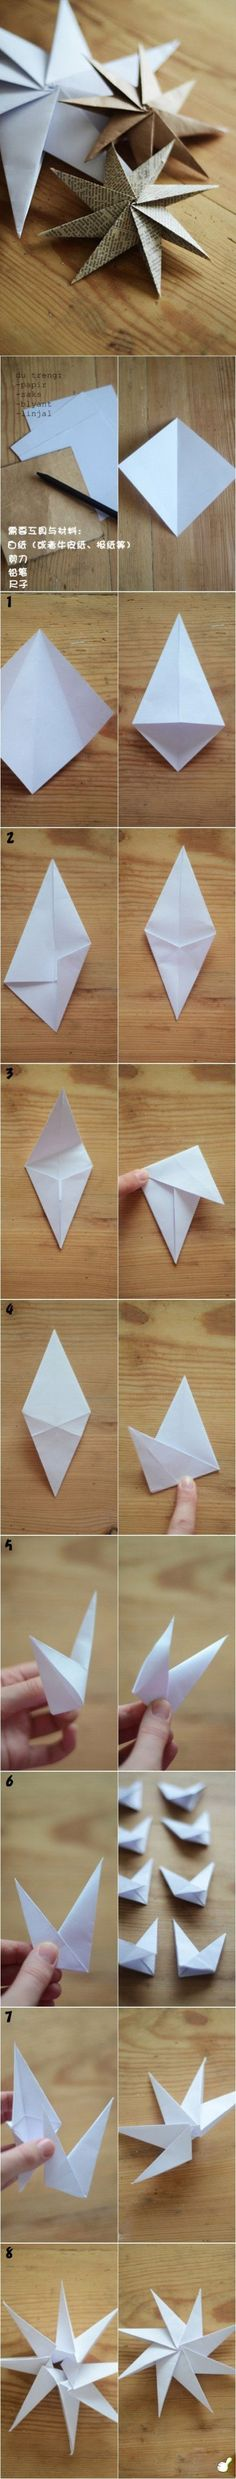 DIY Paper Stars diy craft crafts craft ideas / easy paper crafts ideas (Just follow along with this photo instructions)